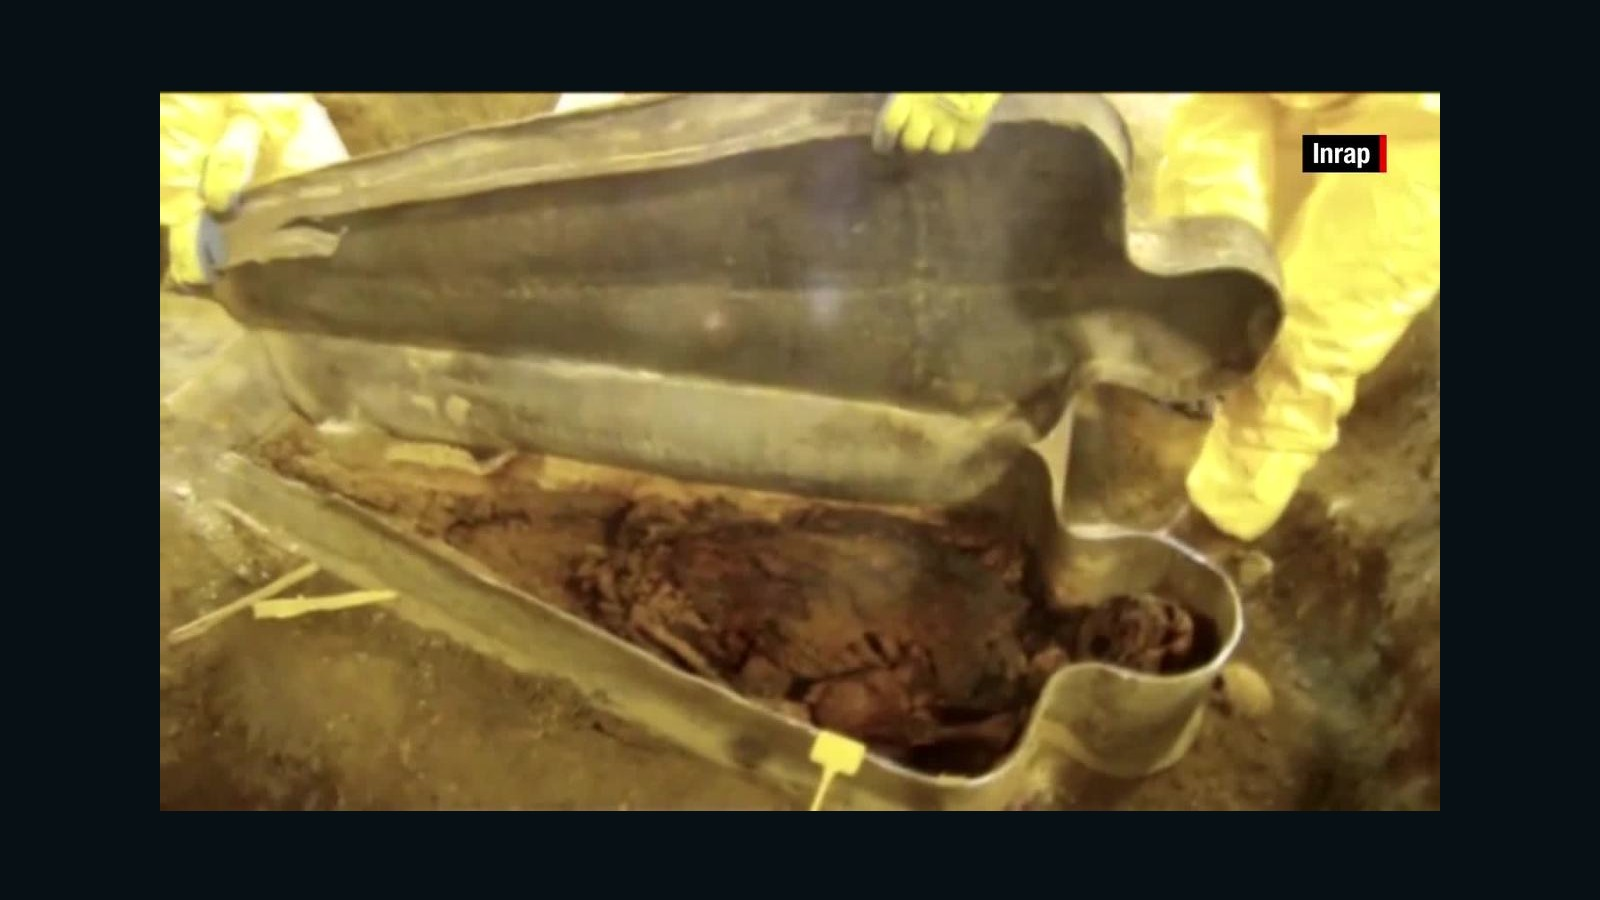 In China, found a coffin with an incorruptible body, which is 300 years old